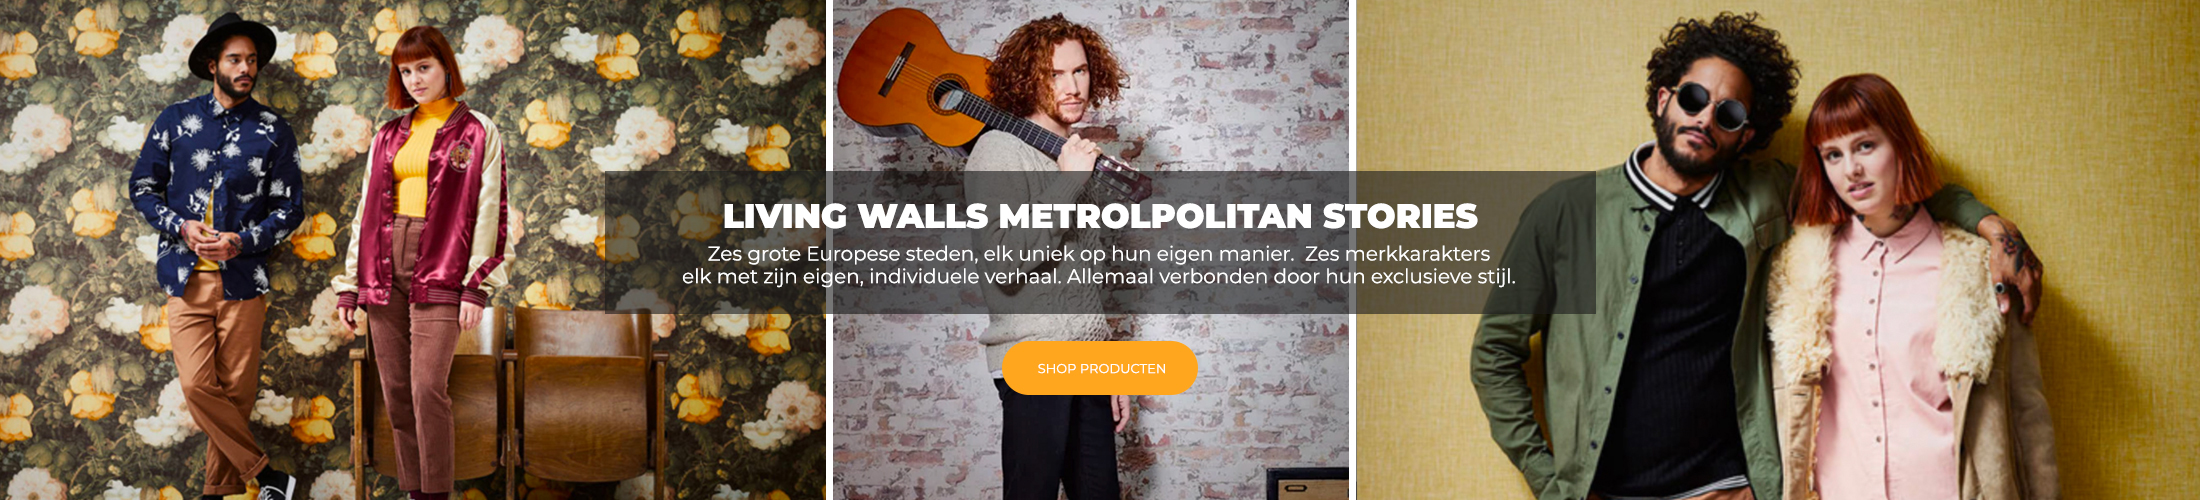 Living Walls Metrolpolitan Stories